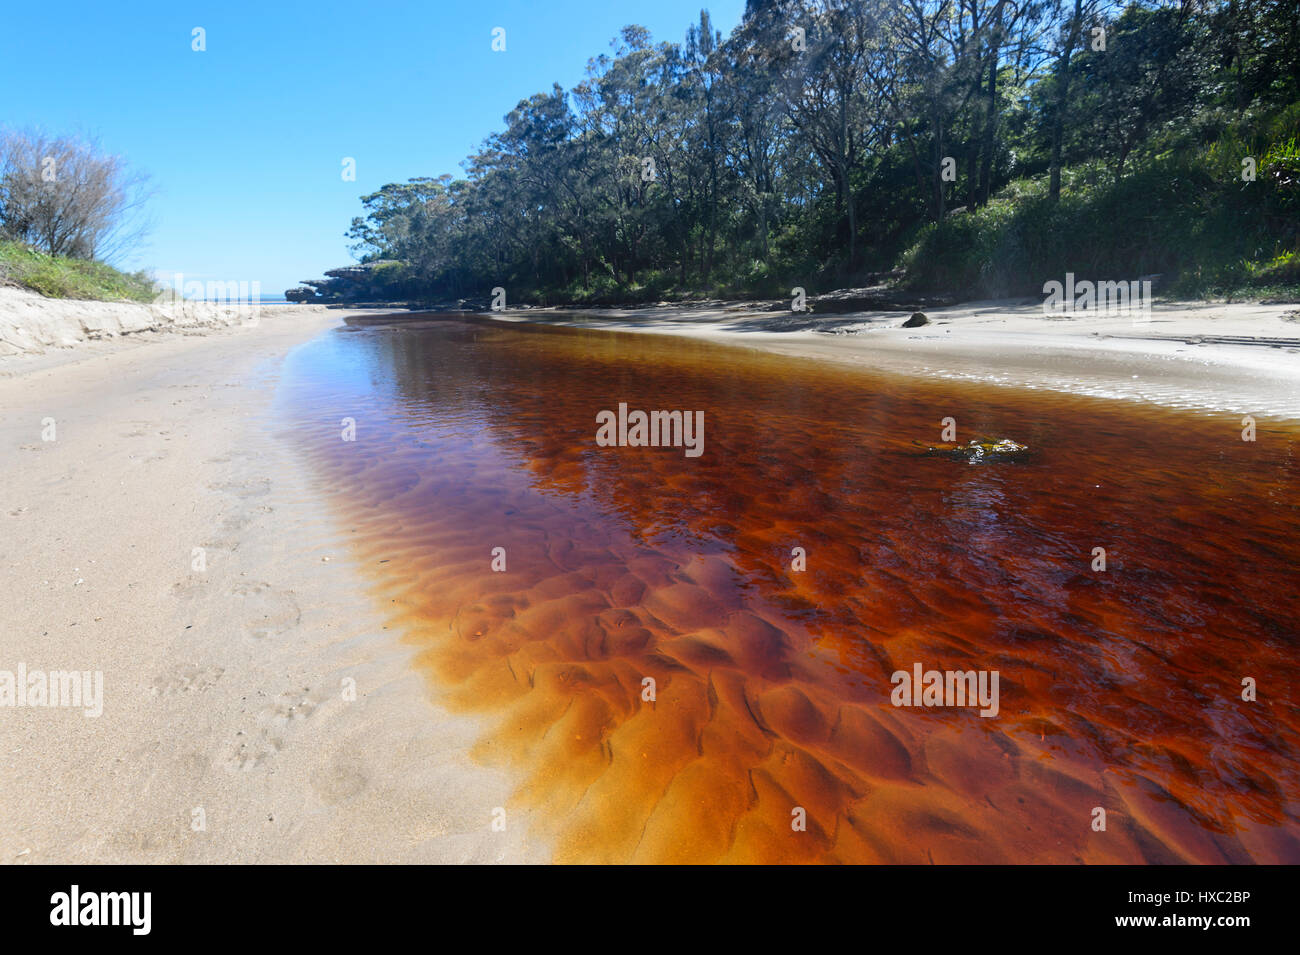 tannin-stained-creek-flowing-into-the-se